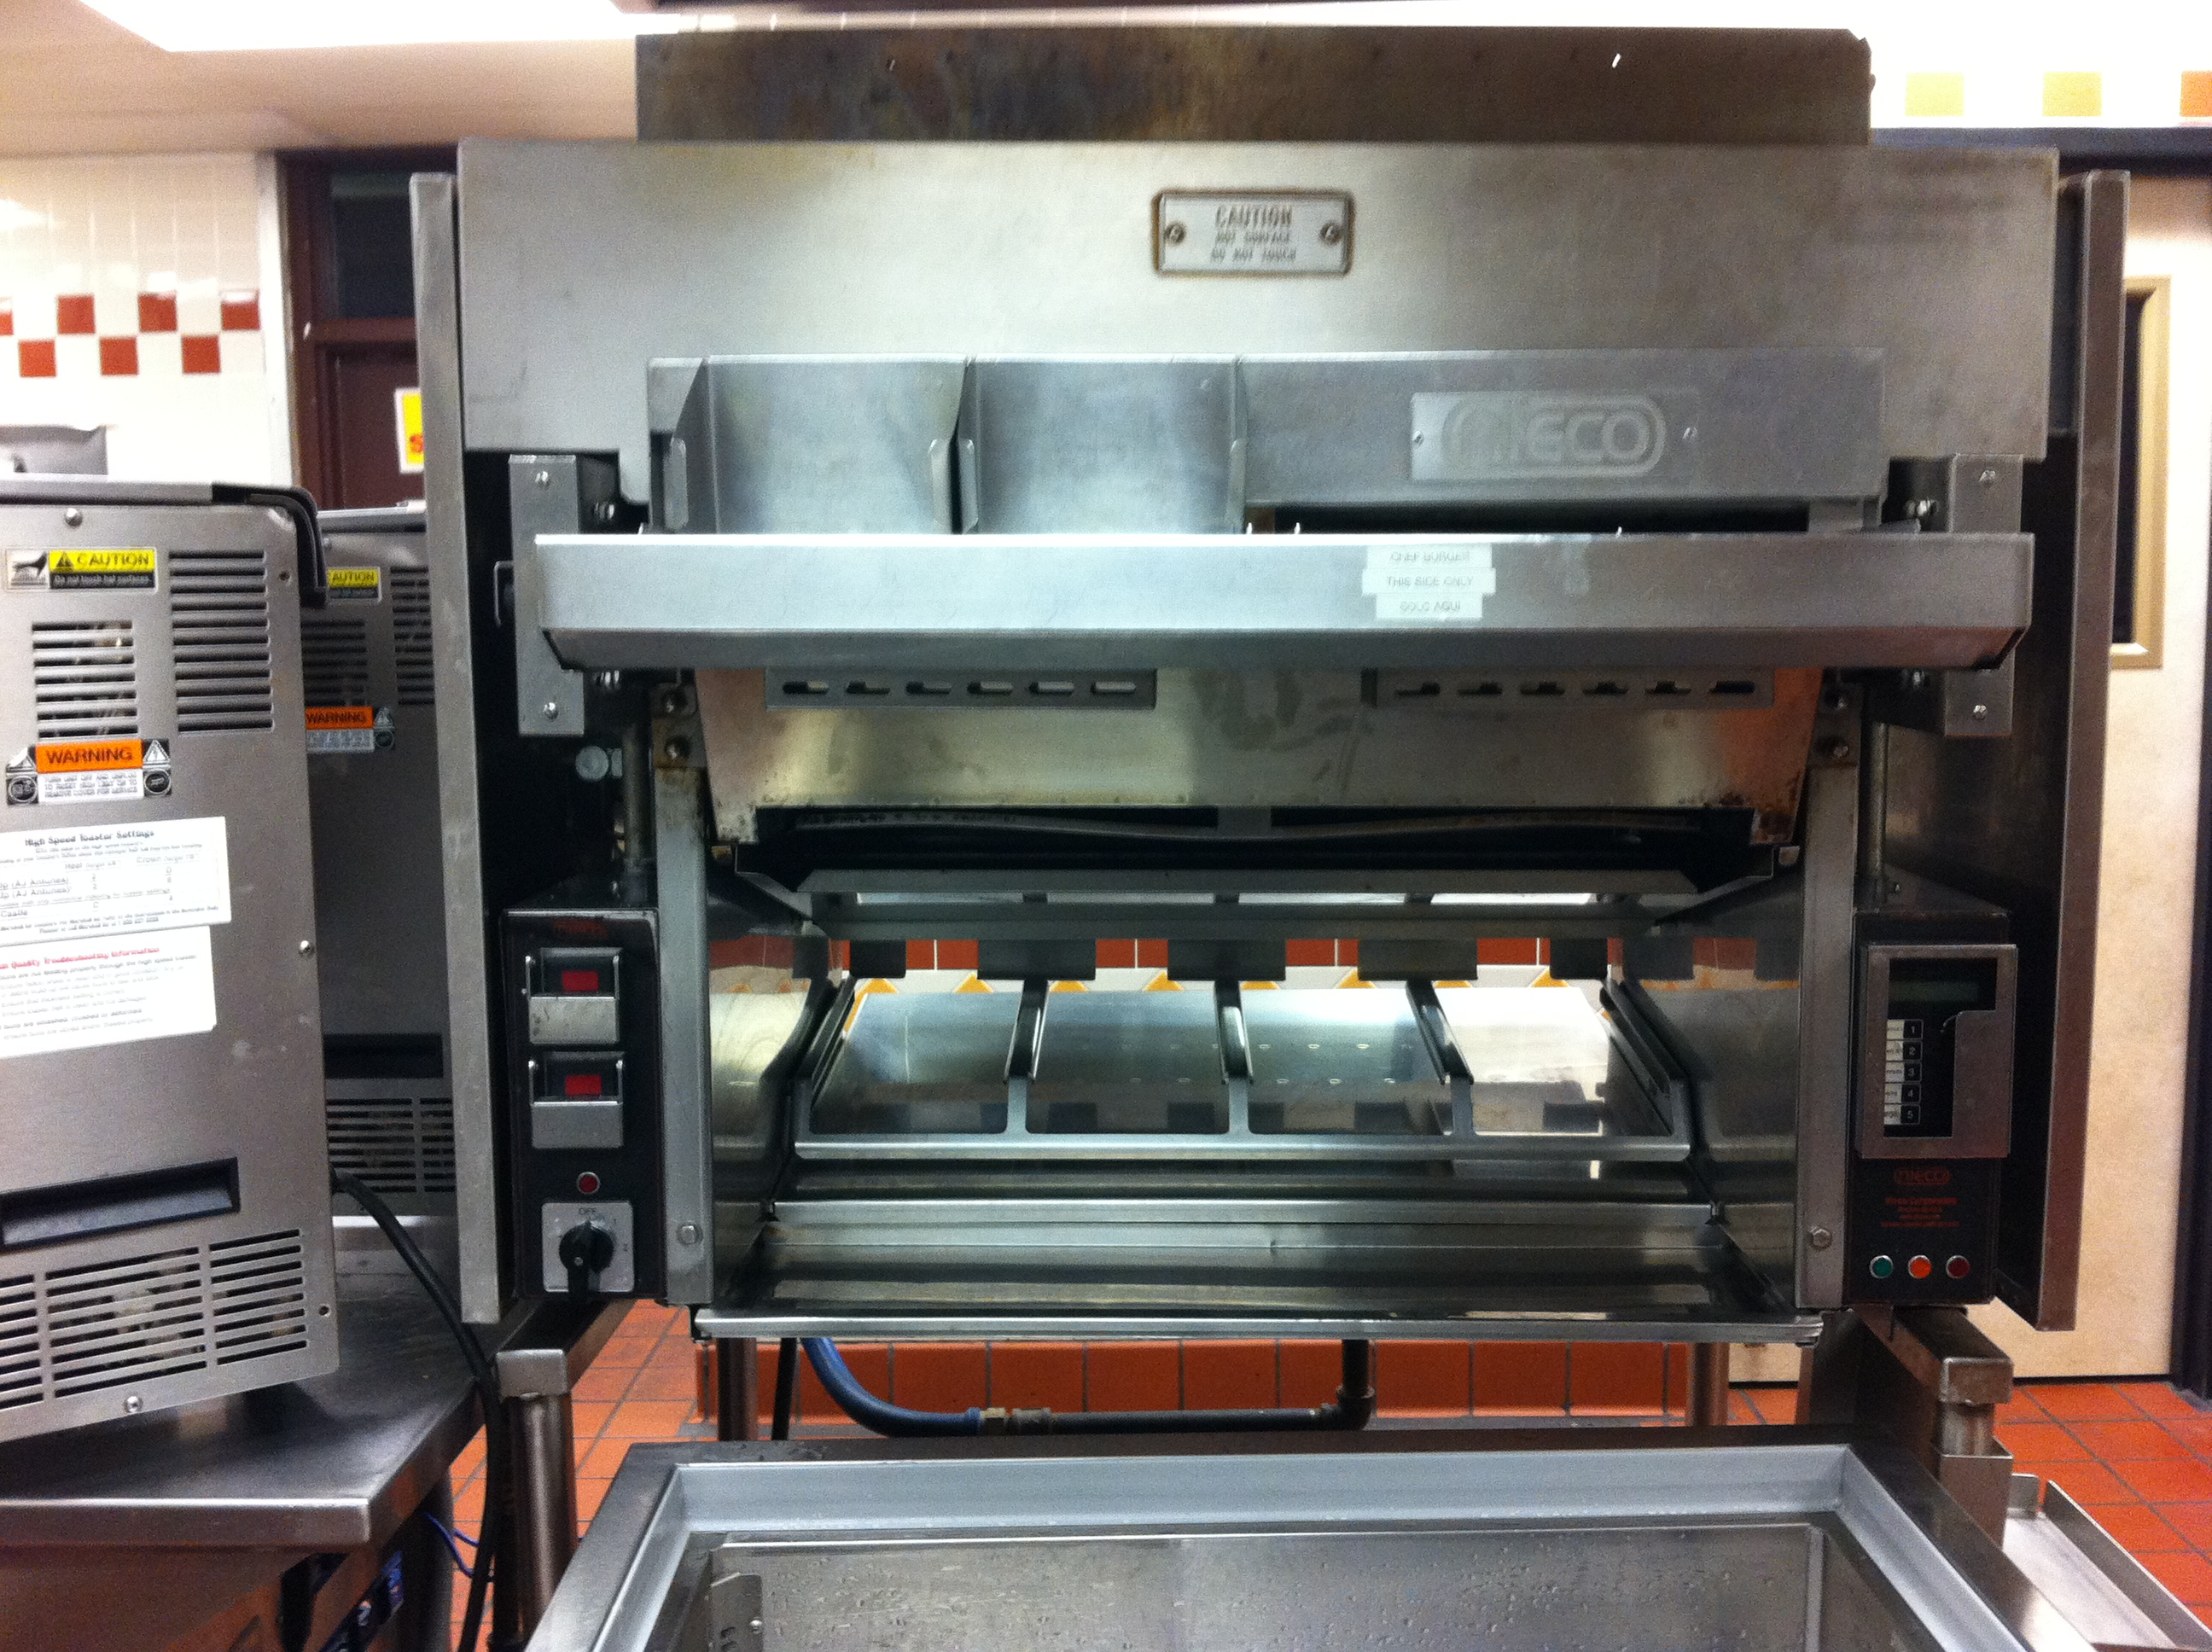 Used Restaurant Grill For Sale I Calgary